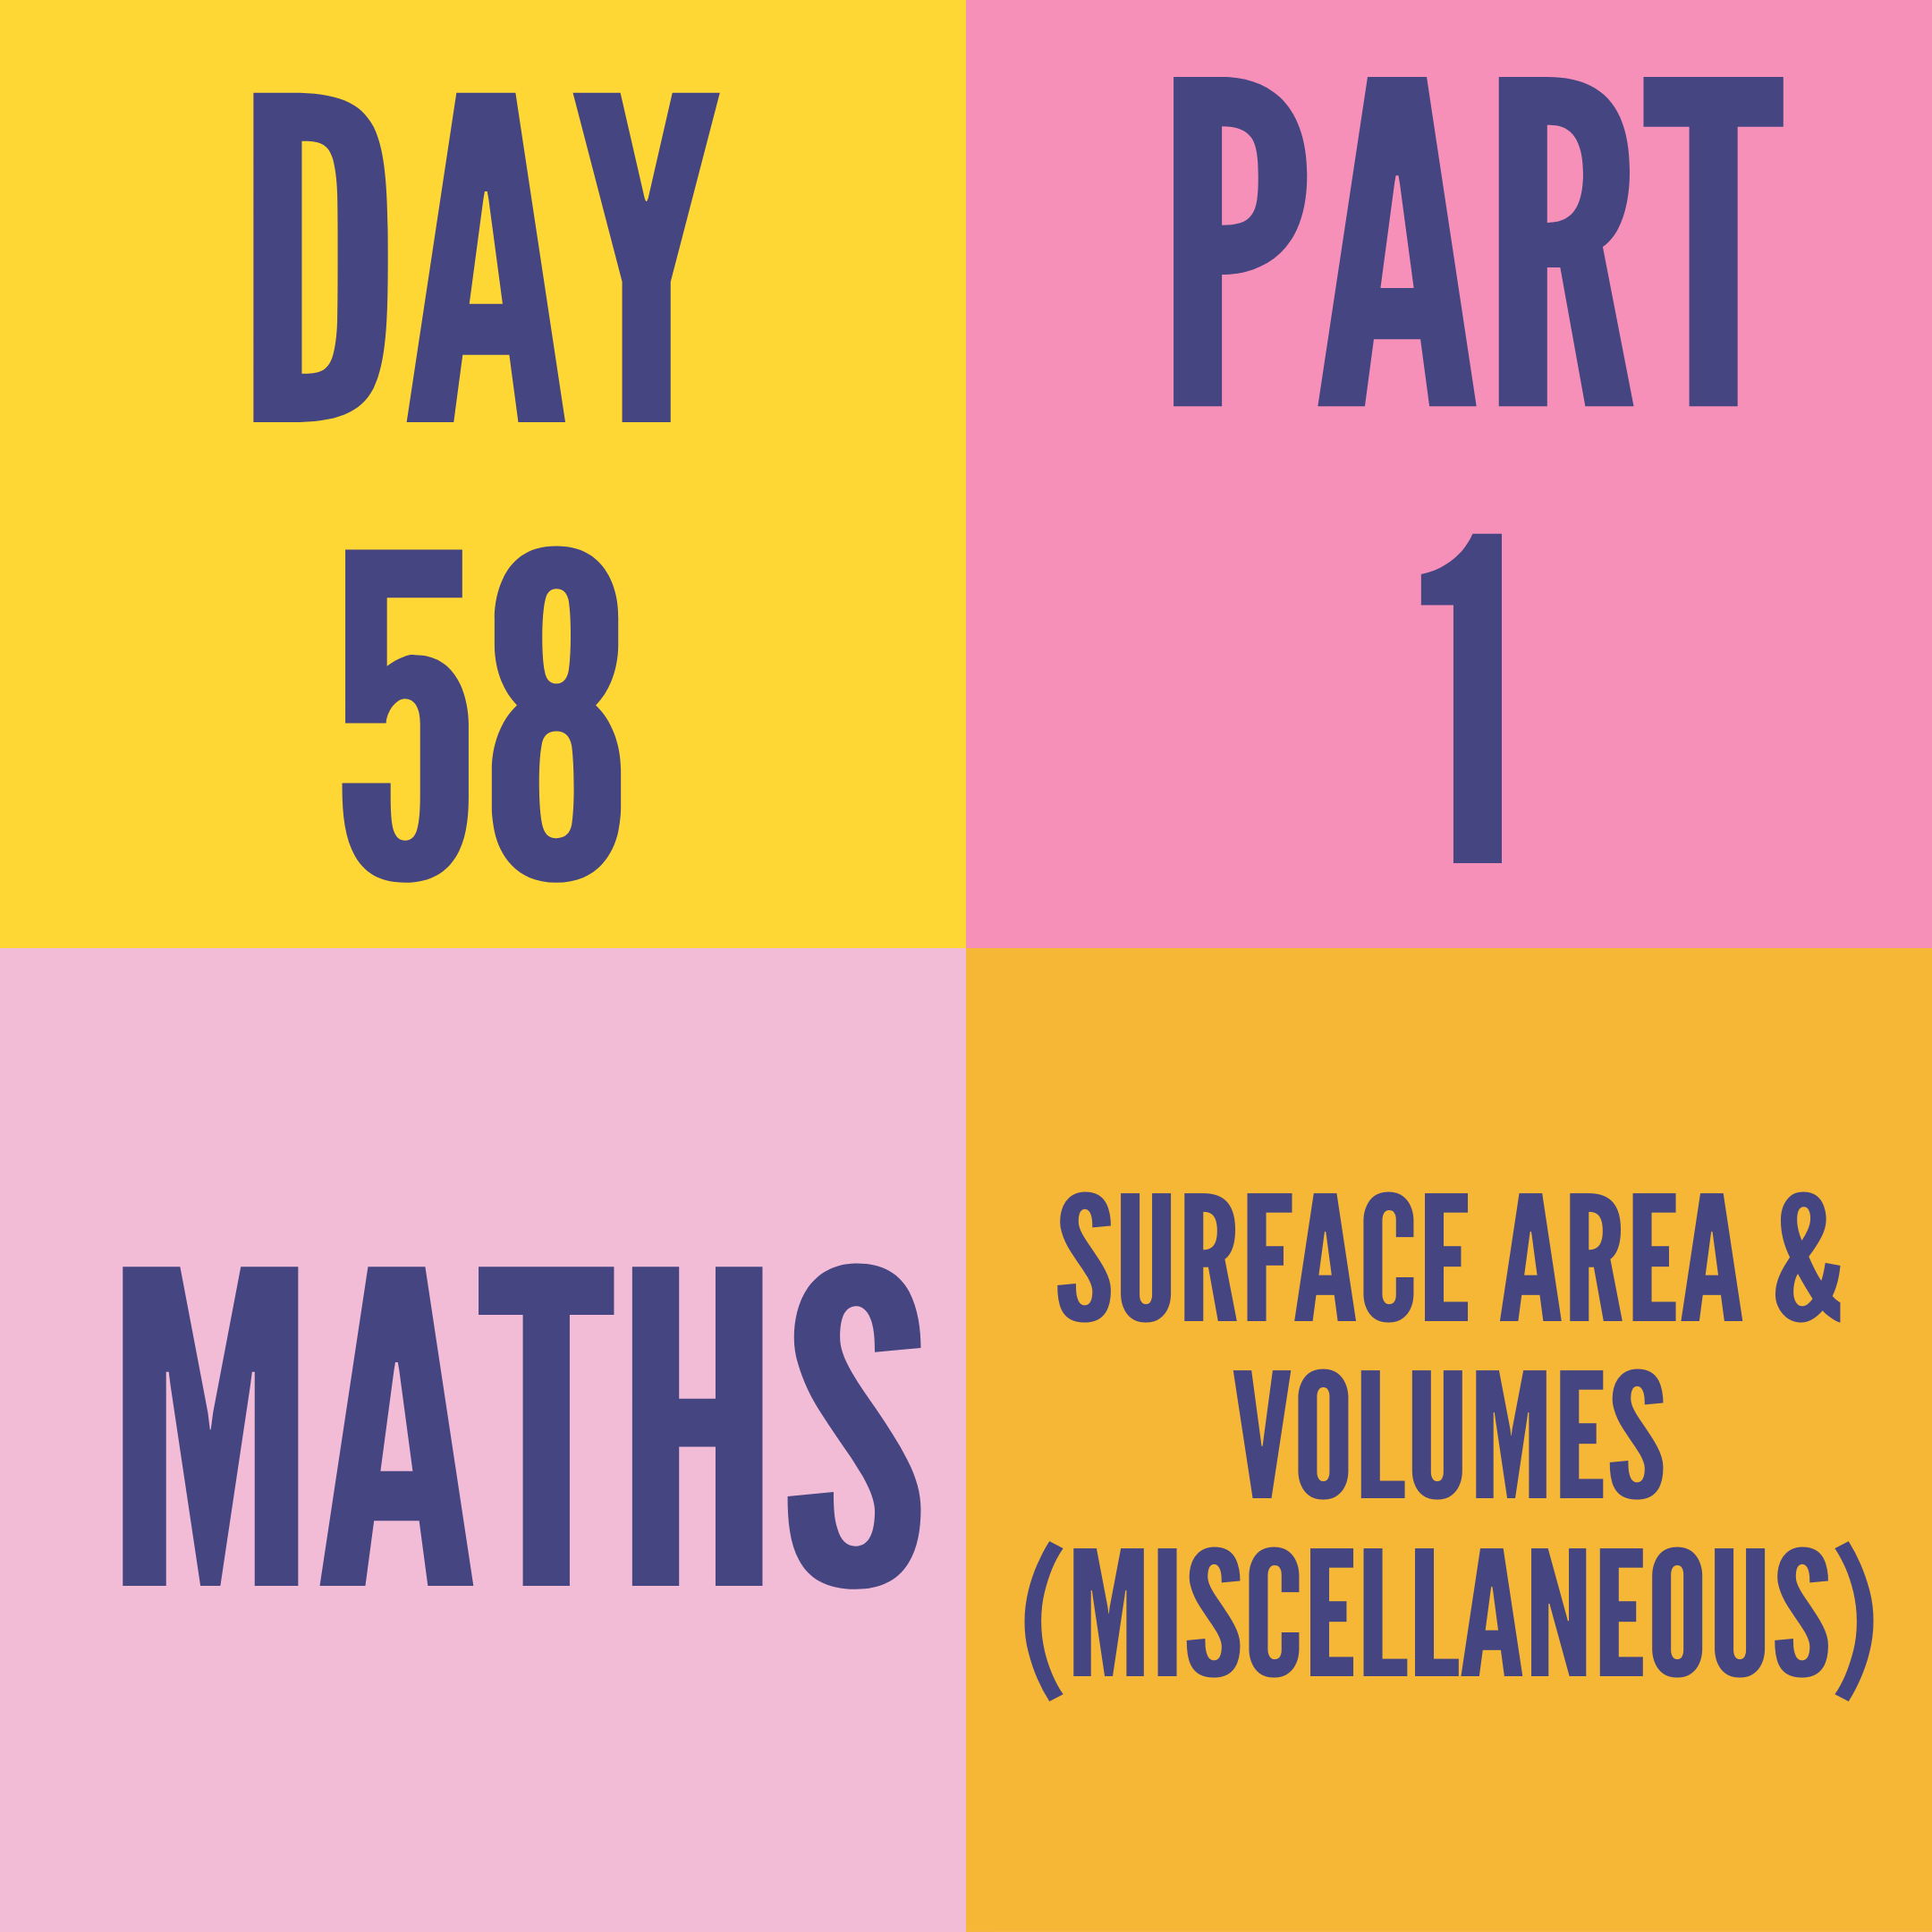 DAY-58 PART-1 SURFACE AREA & VOLUMES (MISCELLANEOUS)